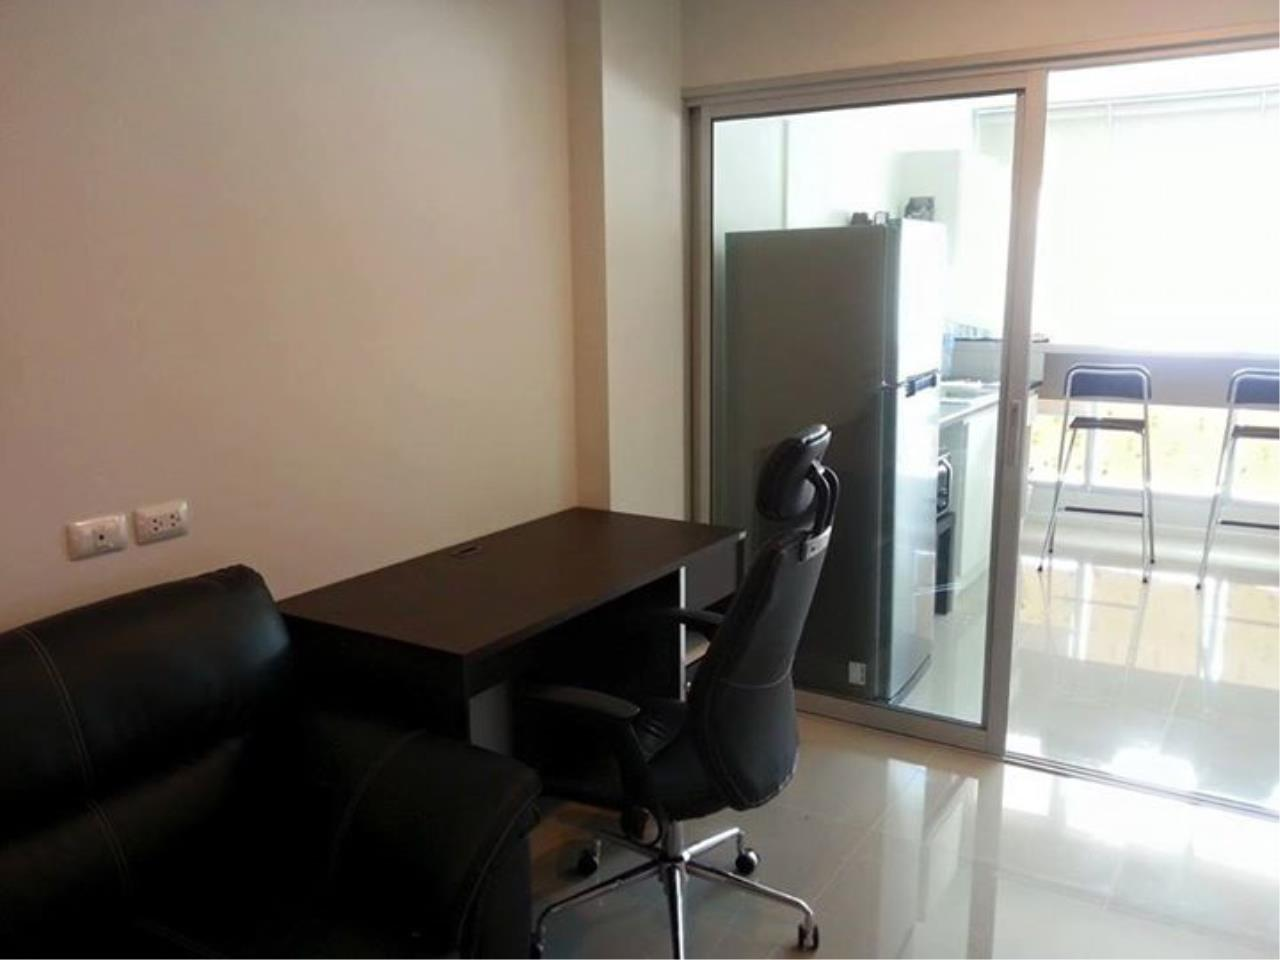 Century21 Skylux Agency's Aspire Rama 9 / Condo For Sale / 1 Bedroom / 39 SQM / MRT Phra Ram 9 / Bangkok 5